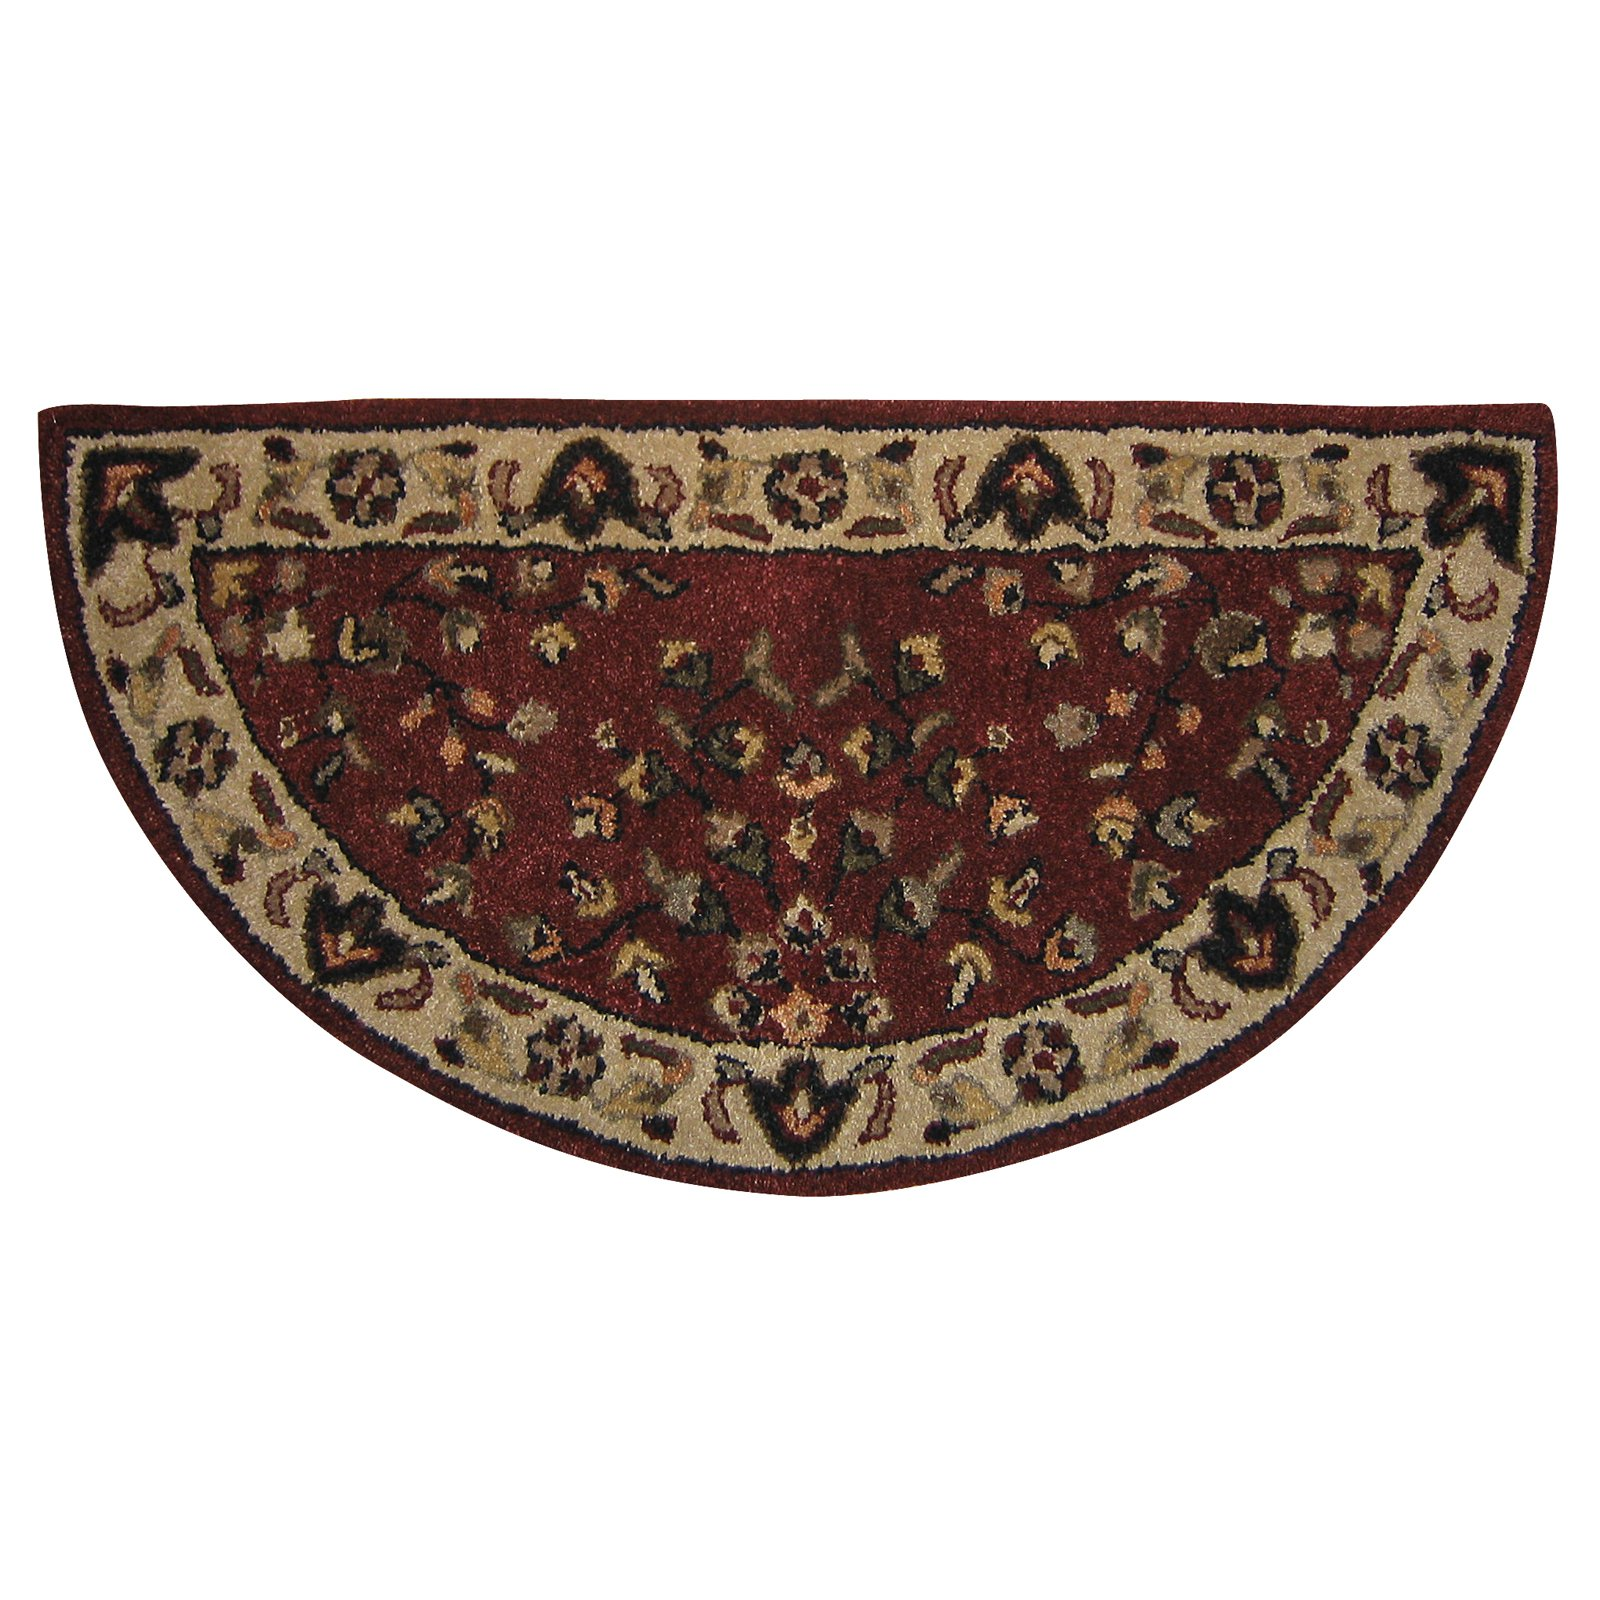 Uniflame Half-Circle Floral Hearth Rug, Red and Beige by UniFlame